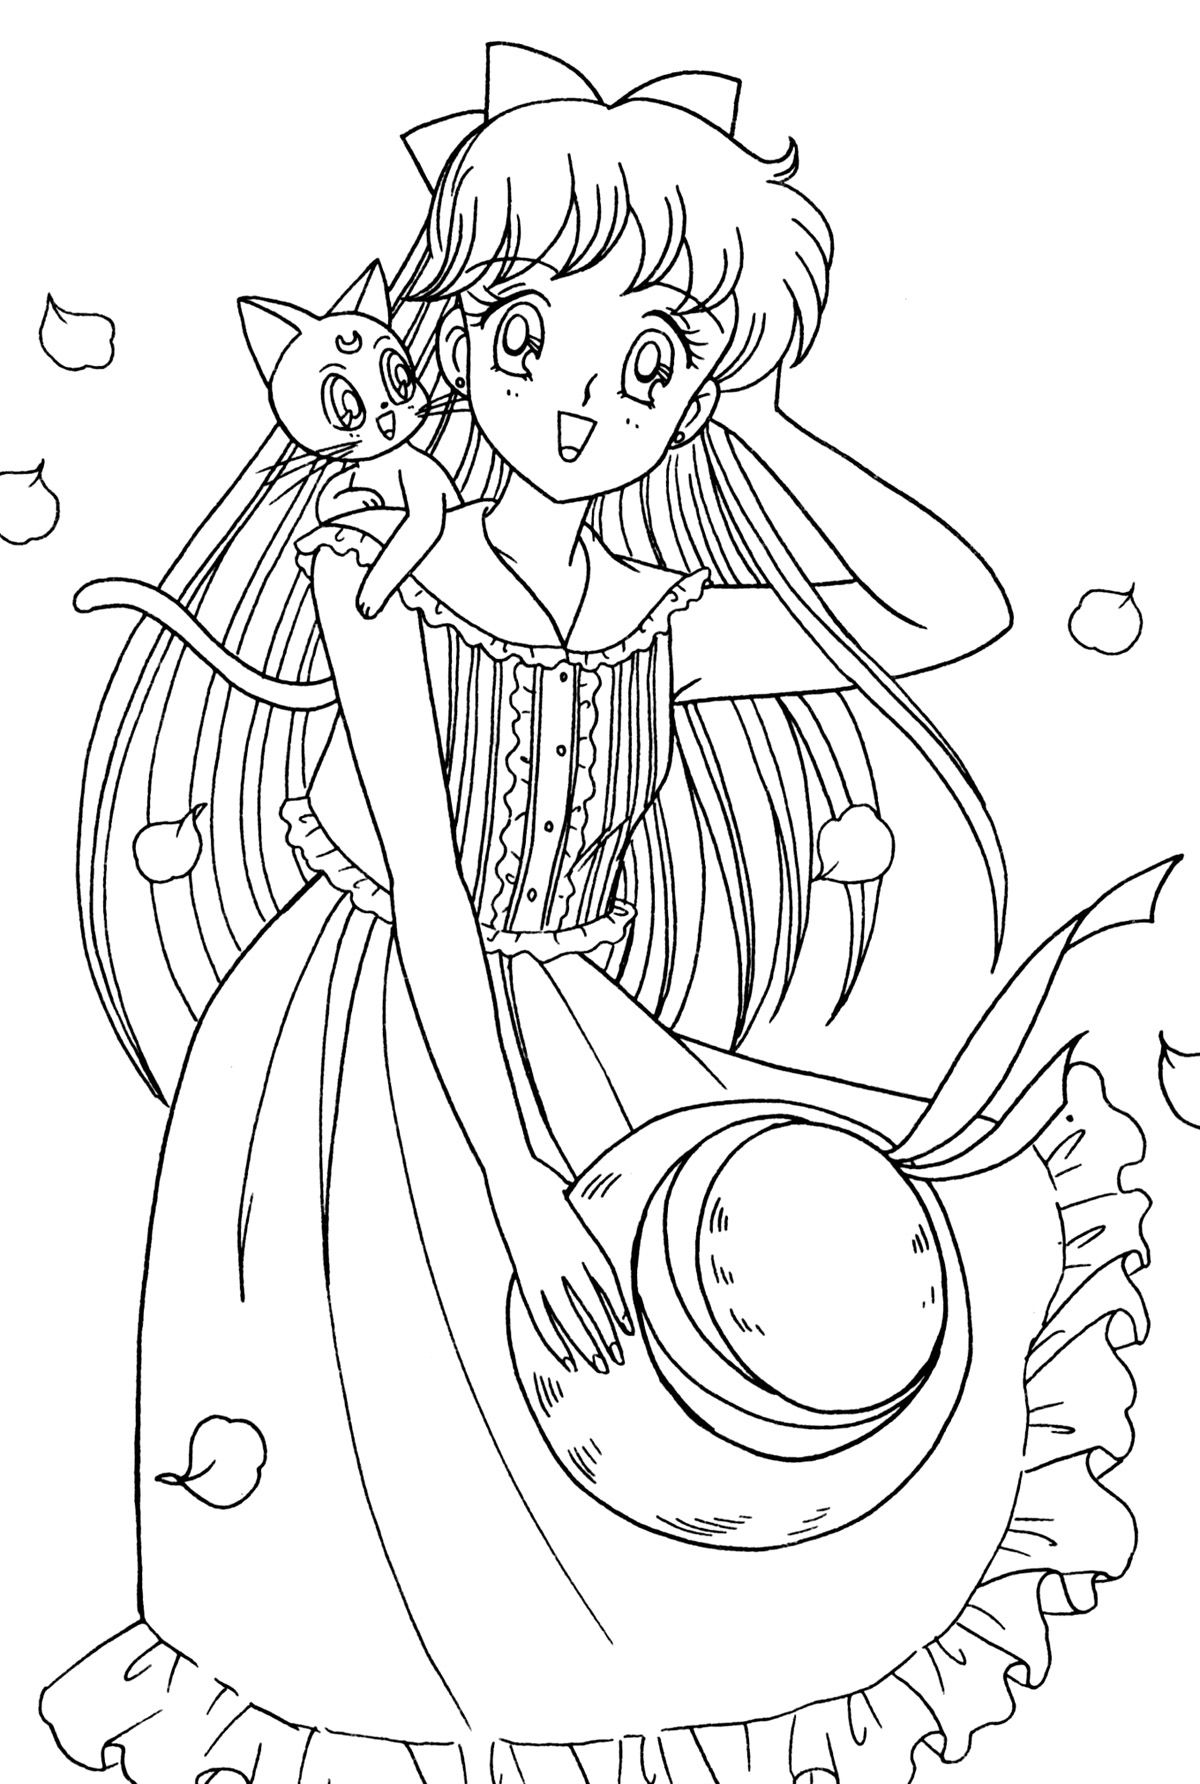 venus085.jpg (1200×1784) | COLORING PAGES :) | Pinterest | Colorear ...